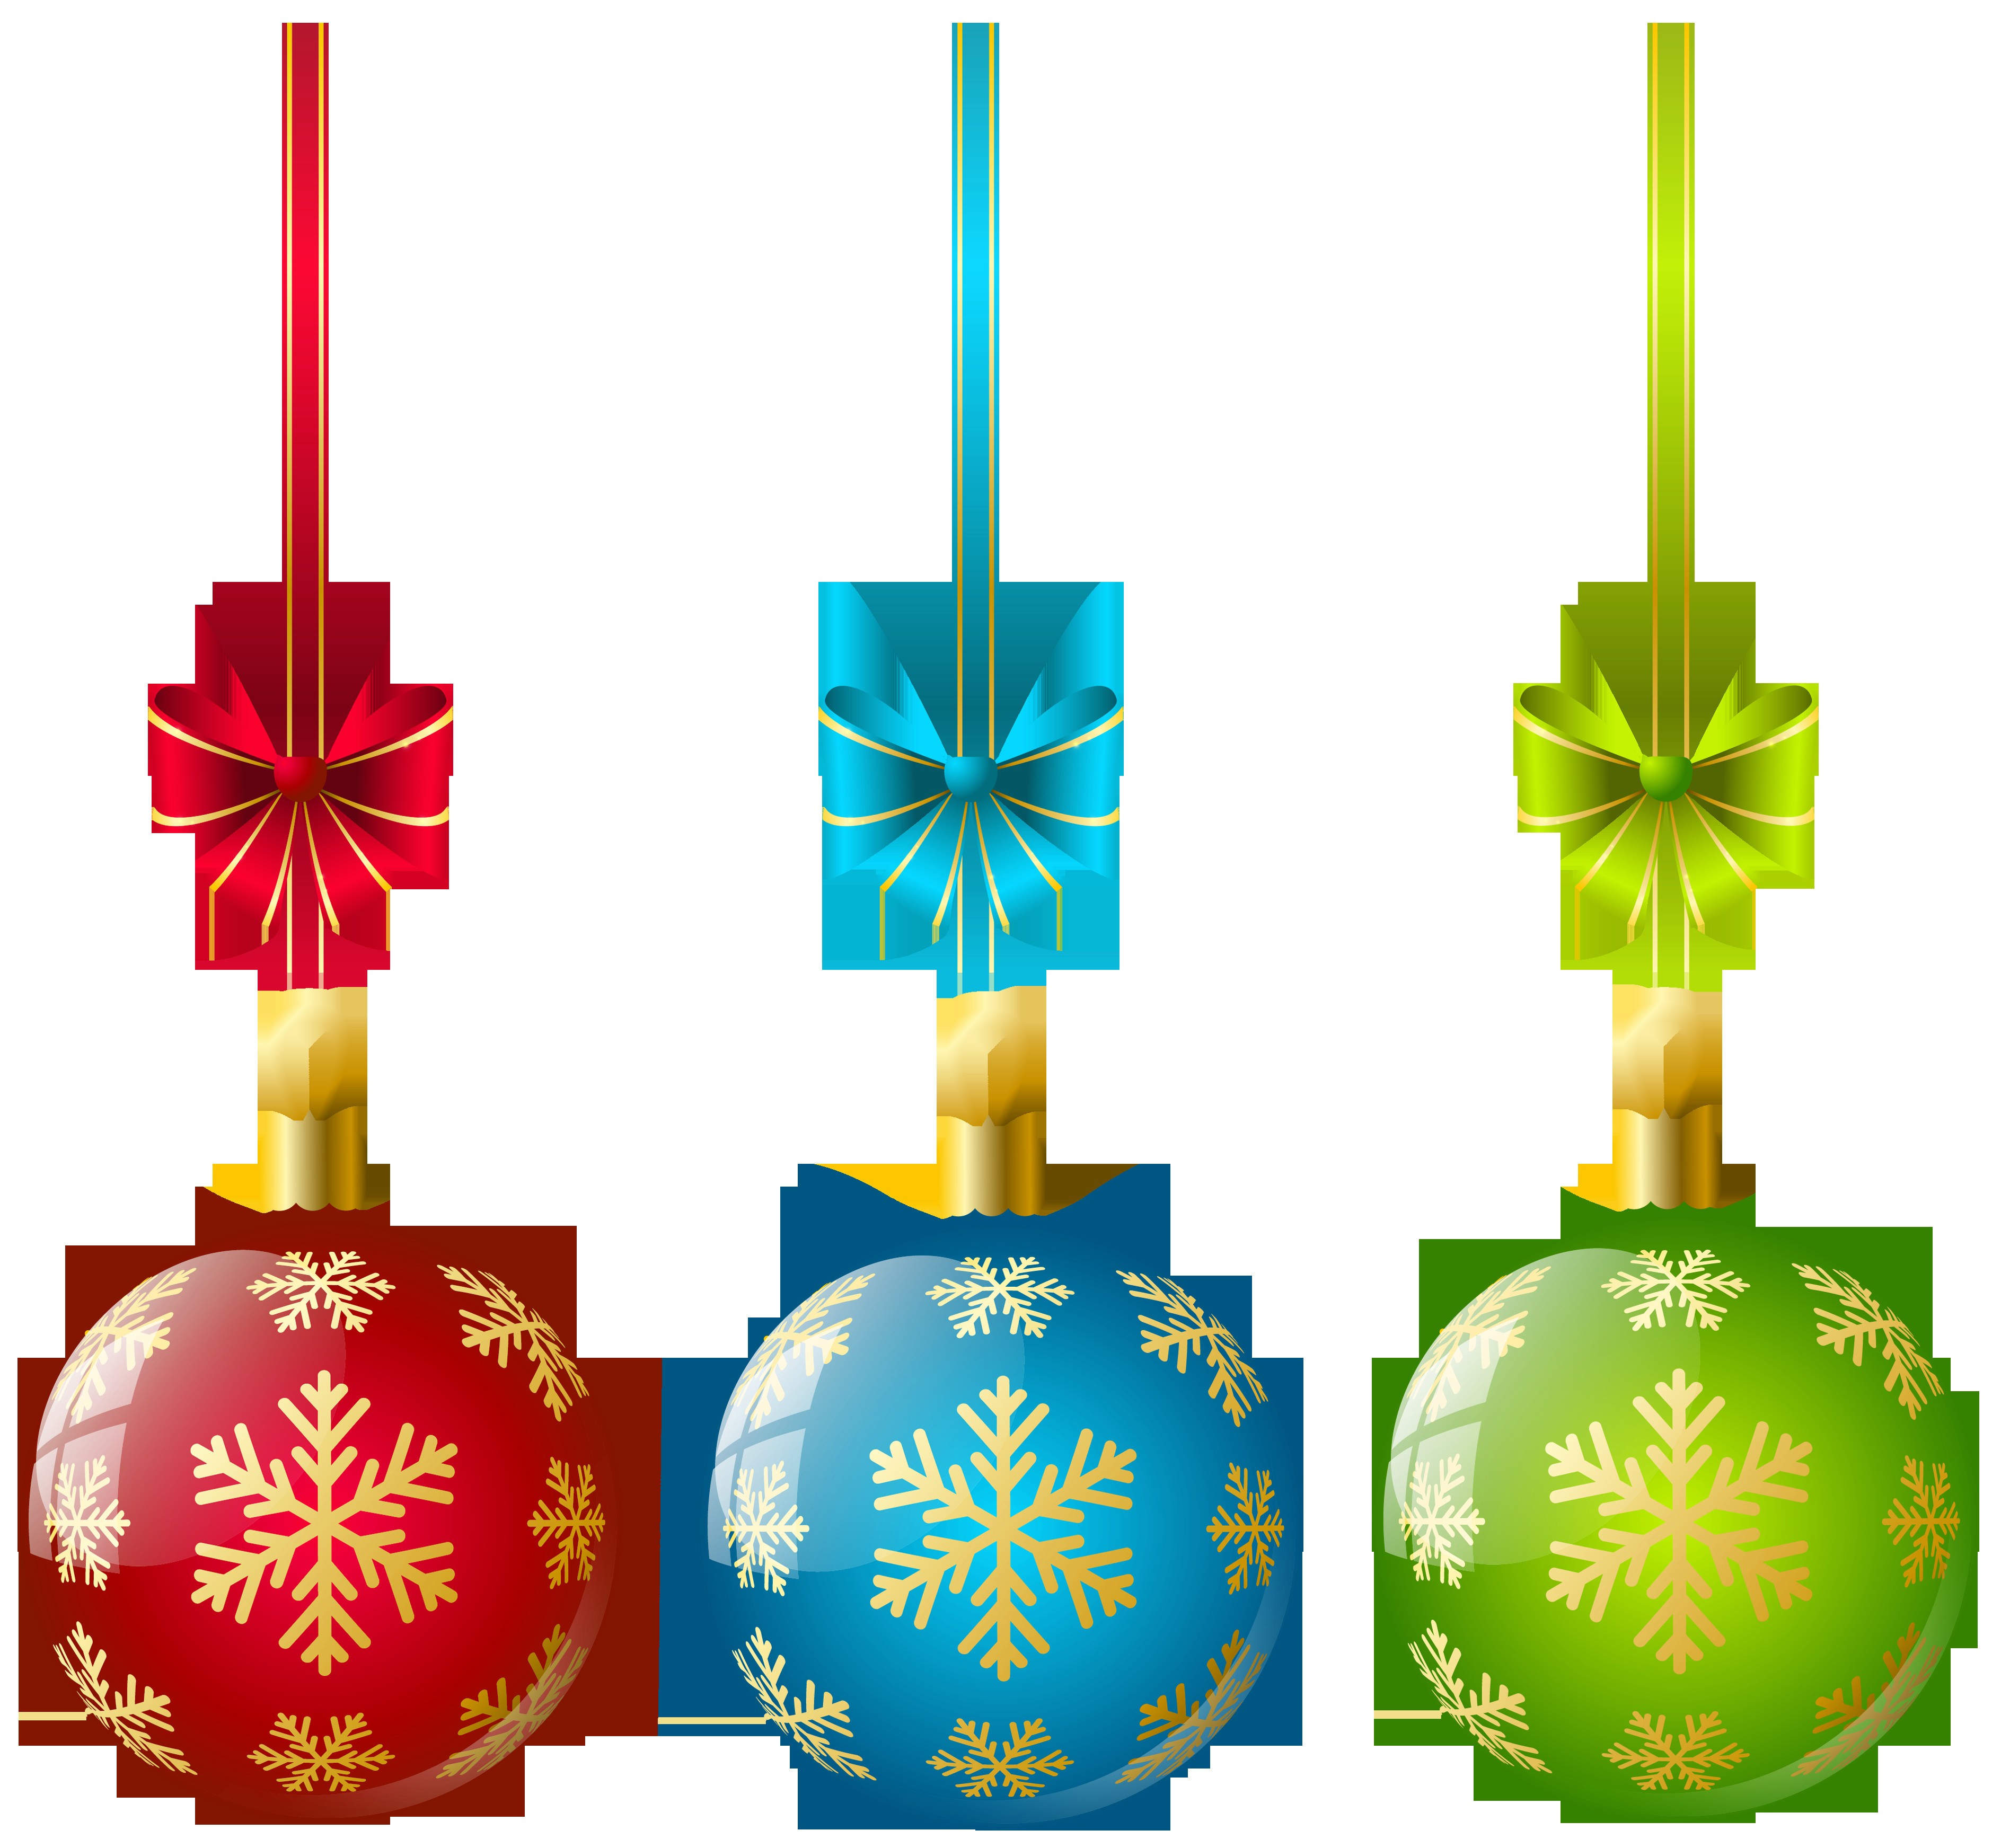 New Christmas Decorations Free Cliparts Free Christmas Decorations Of Adorable 43 Pics Free Christmas Decorations